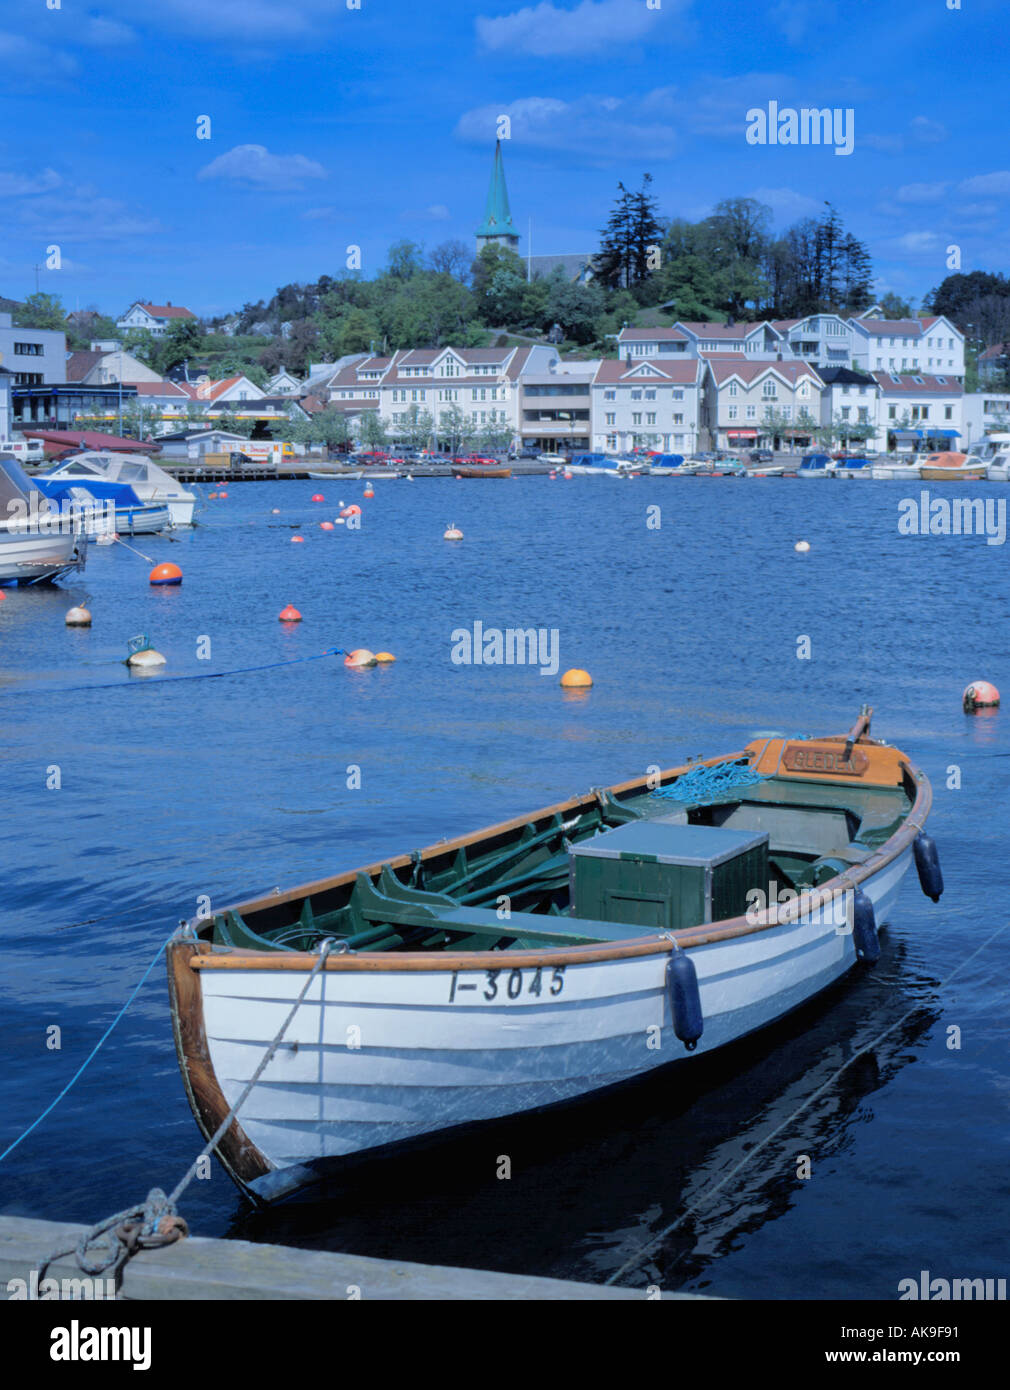 View over waterfront and harbour, Grimstad, Aust-Agder, Norway. - Stock Image